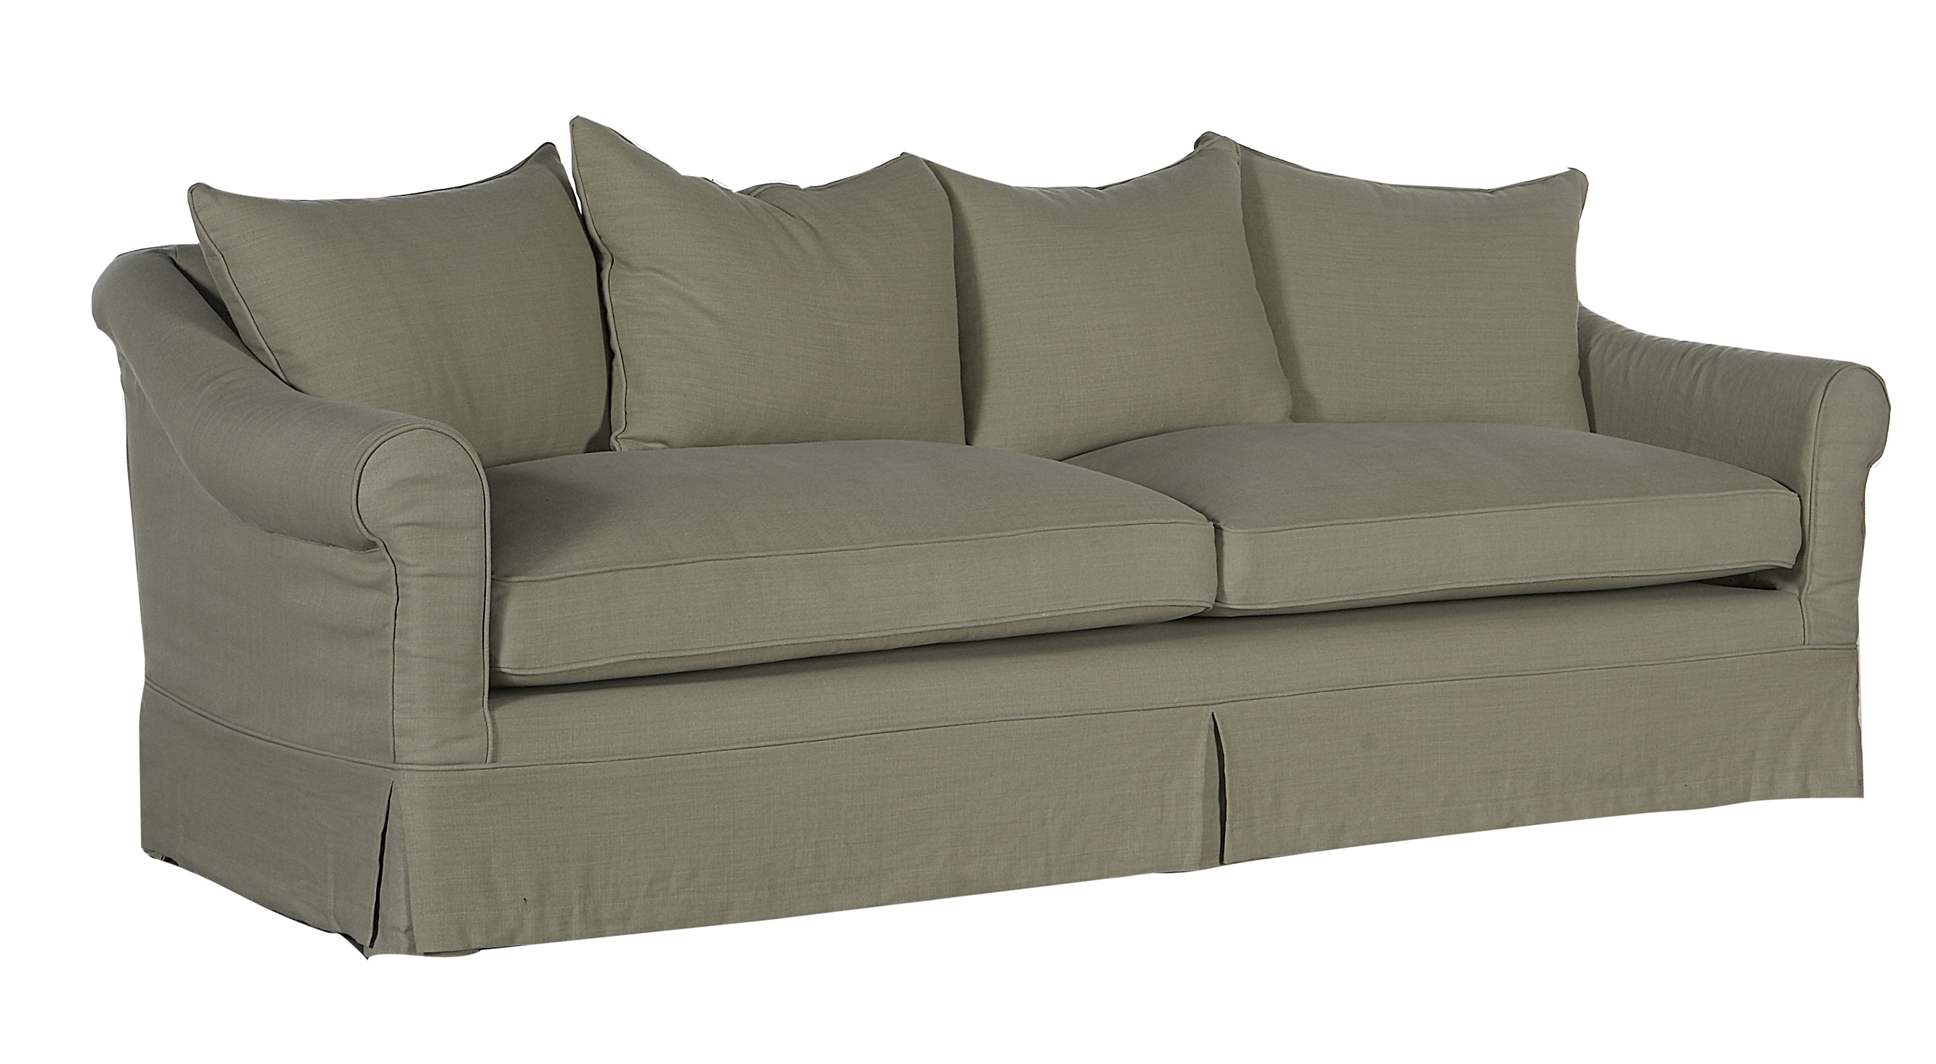 Dislike The Styling Of Loose Covers Modern Designer Furniture And Sofas